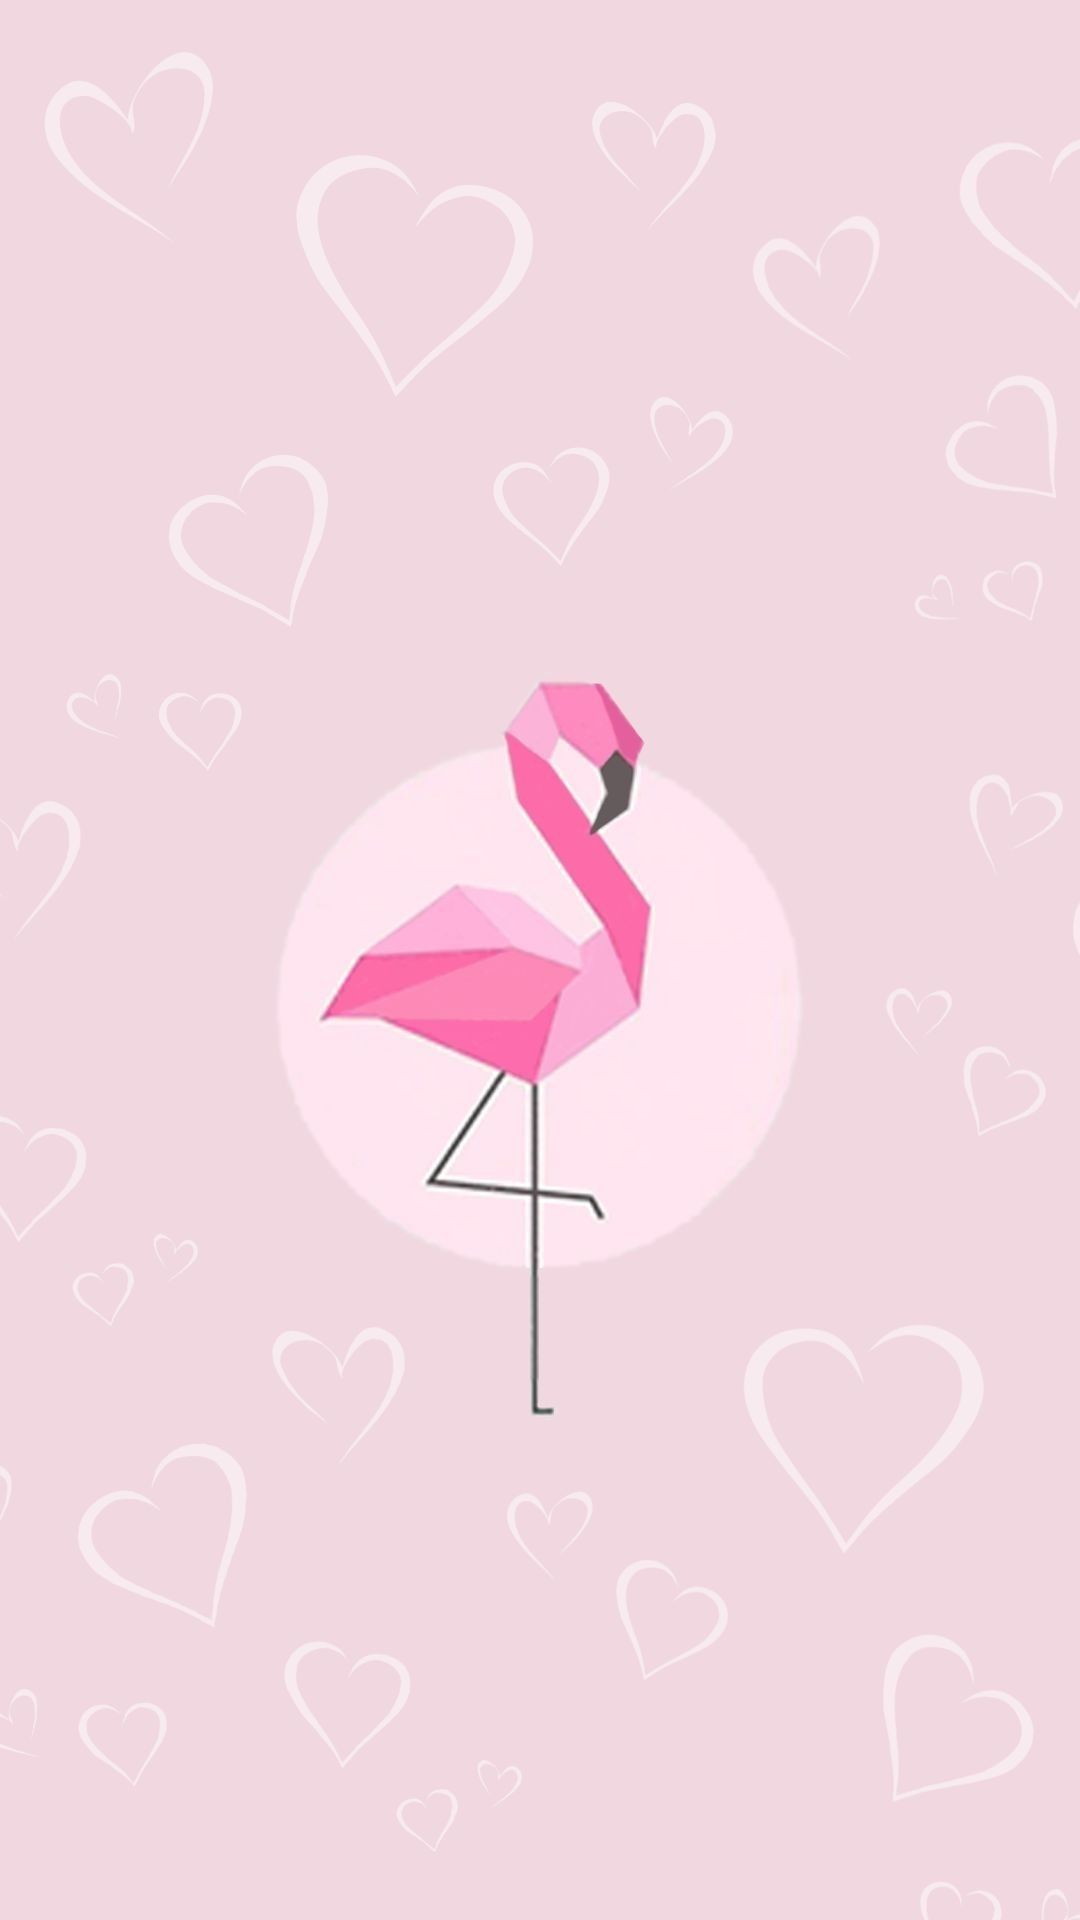 Pin By Keesha Harris On Phone Backgrounds Flamingo Wallpaper Pink Wallpaper Iphone Wallpaper Pictures